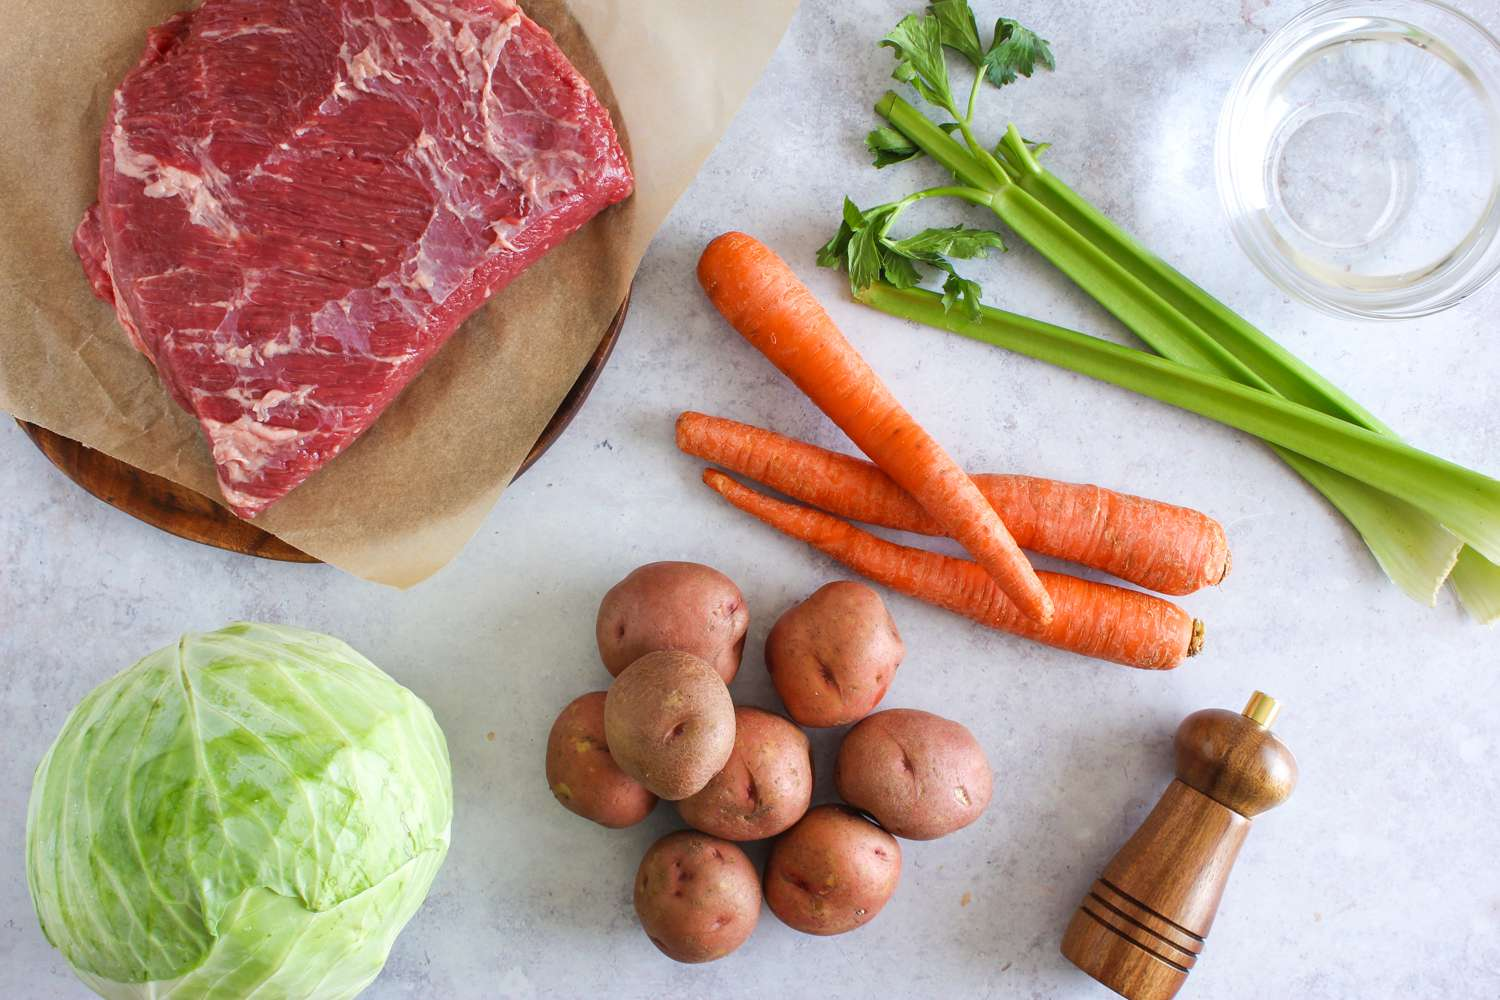 Ingredients for slowcooker corned beef and cabbage